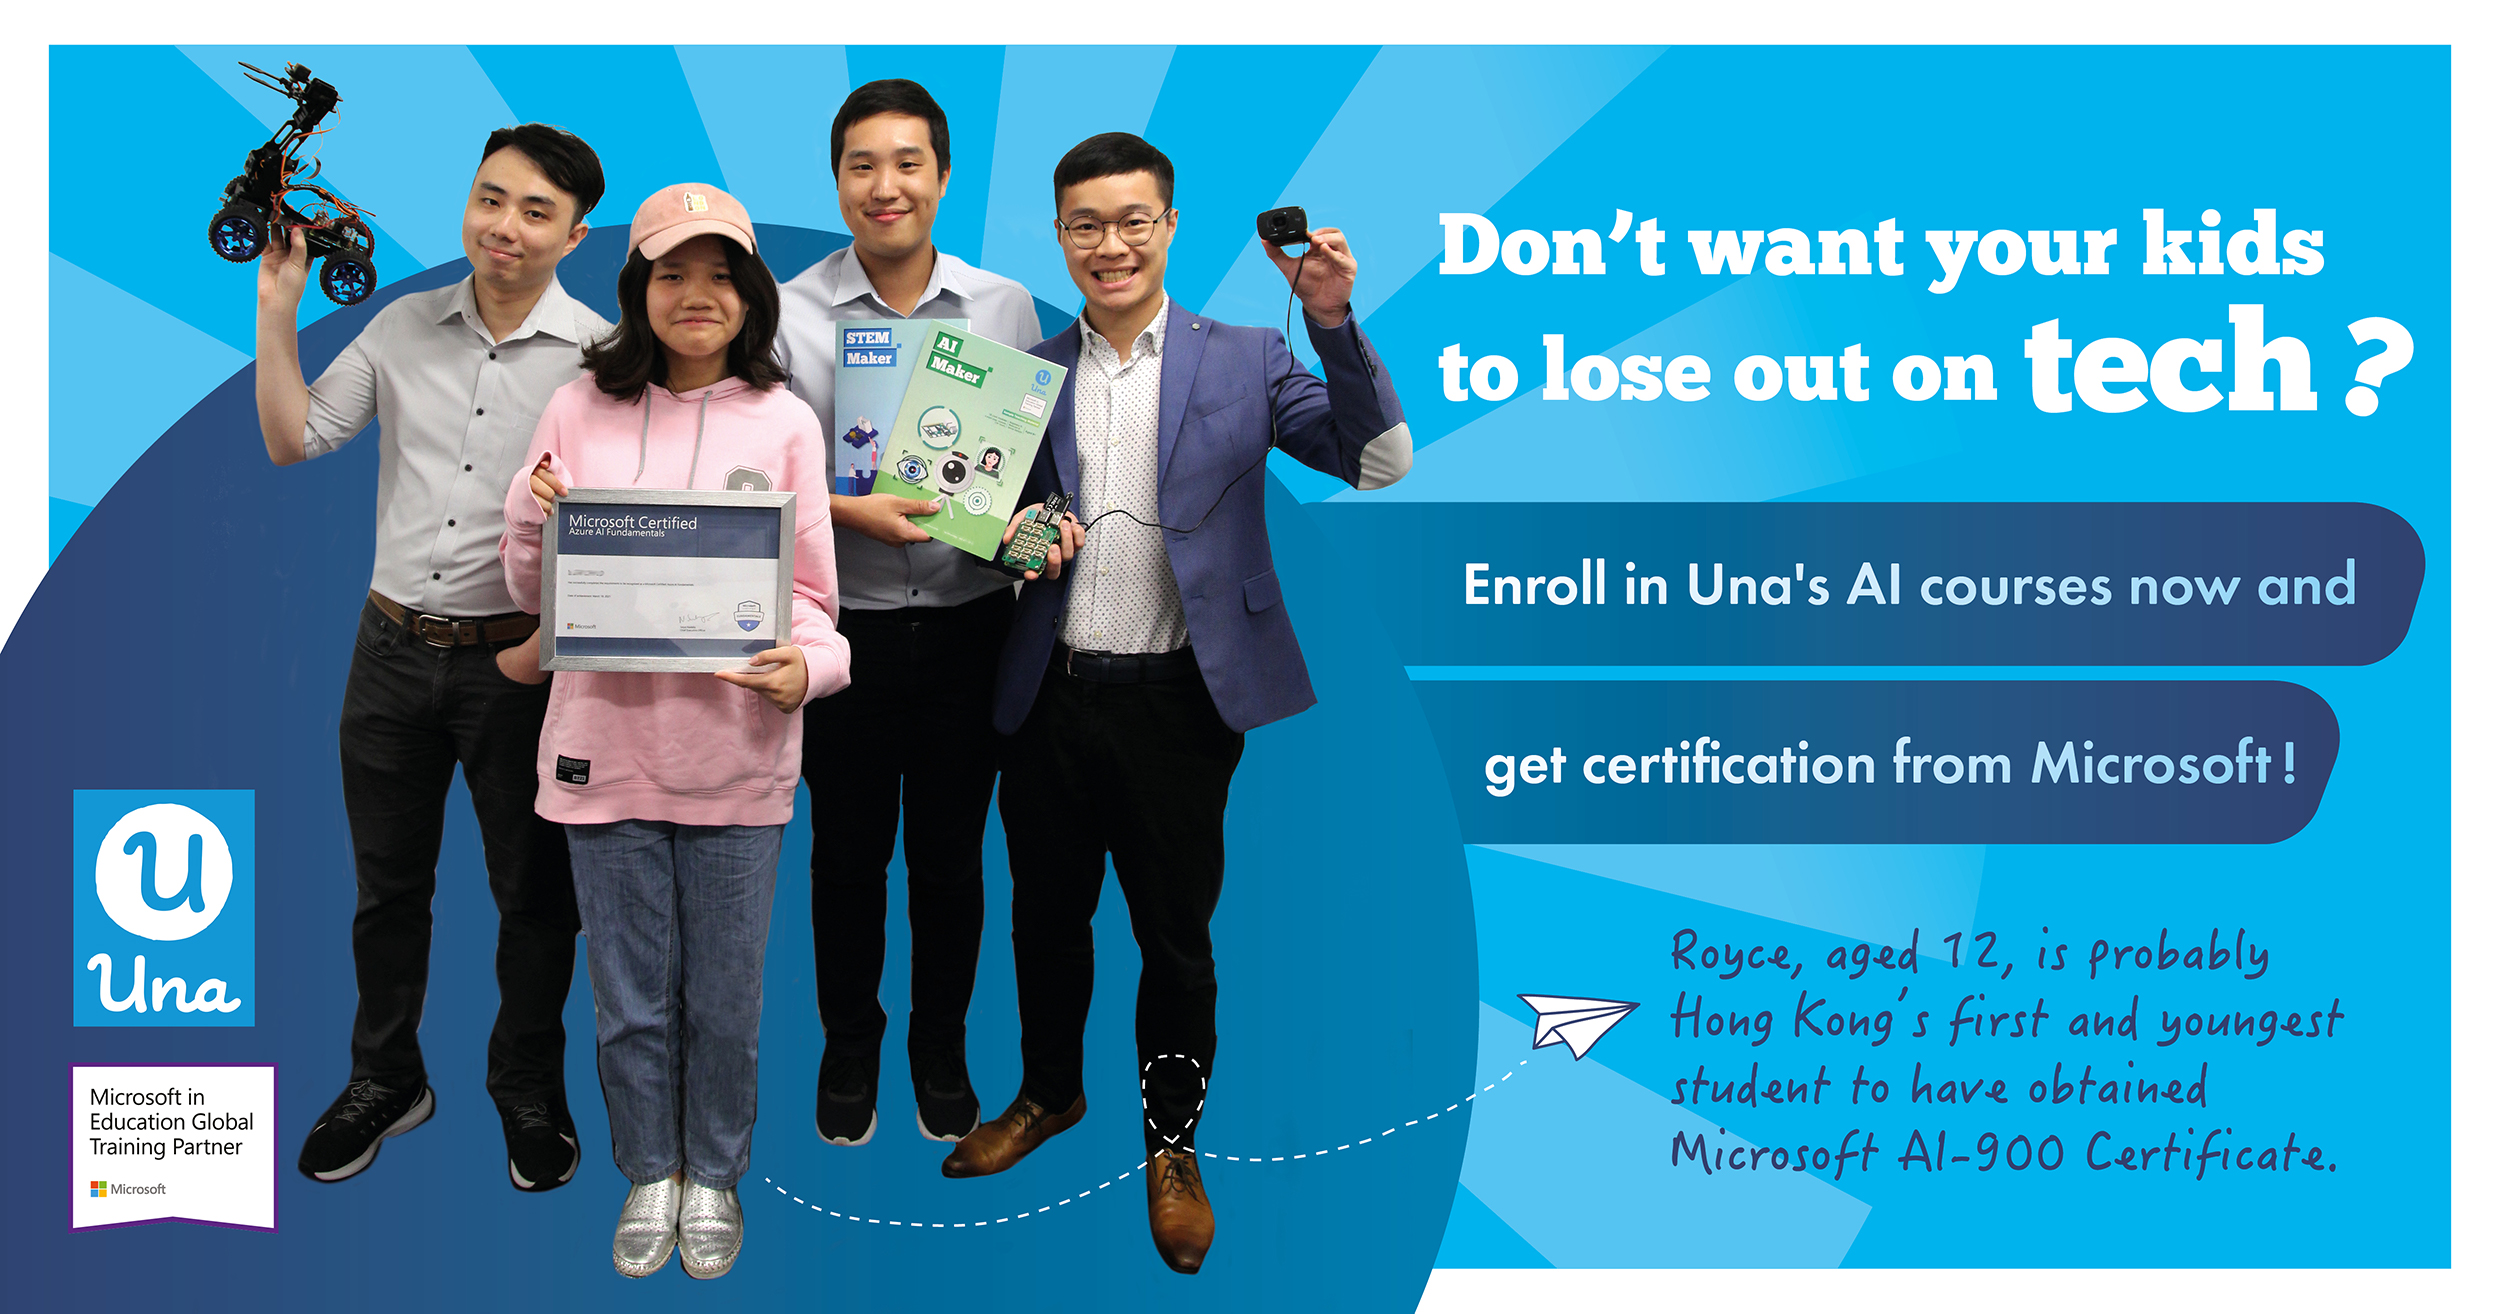 Hong Kong's first and youngest student to have obtained Microsoft AI-900 Certificate